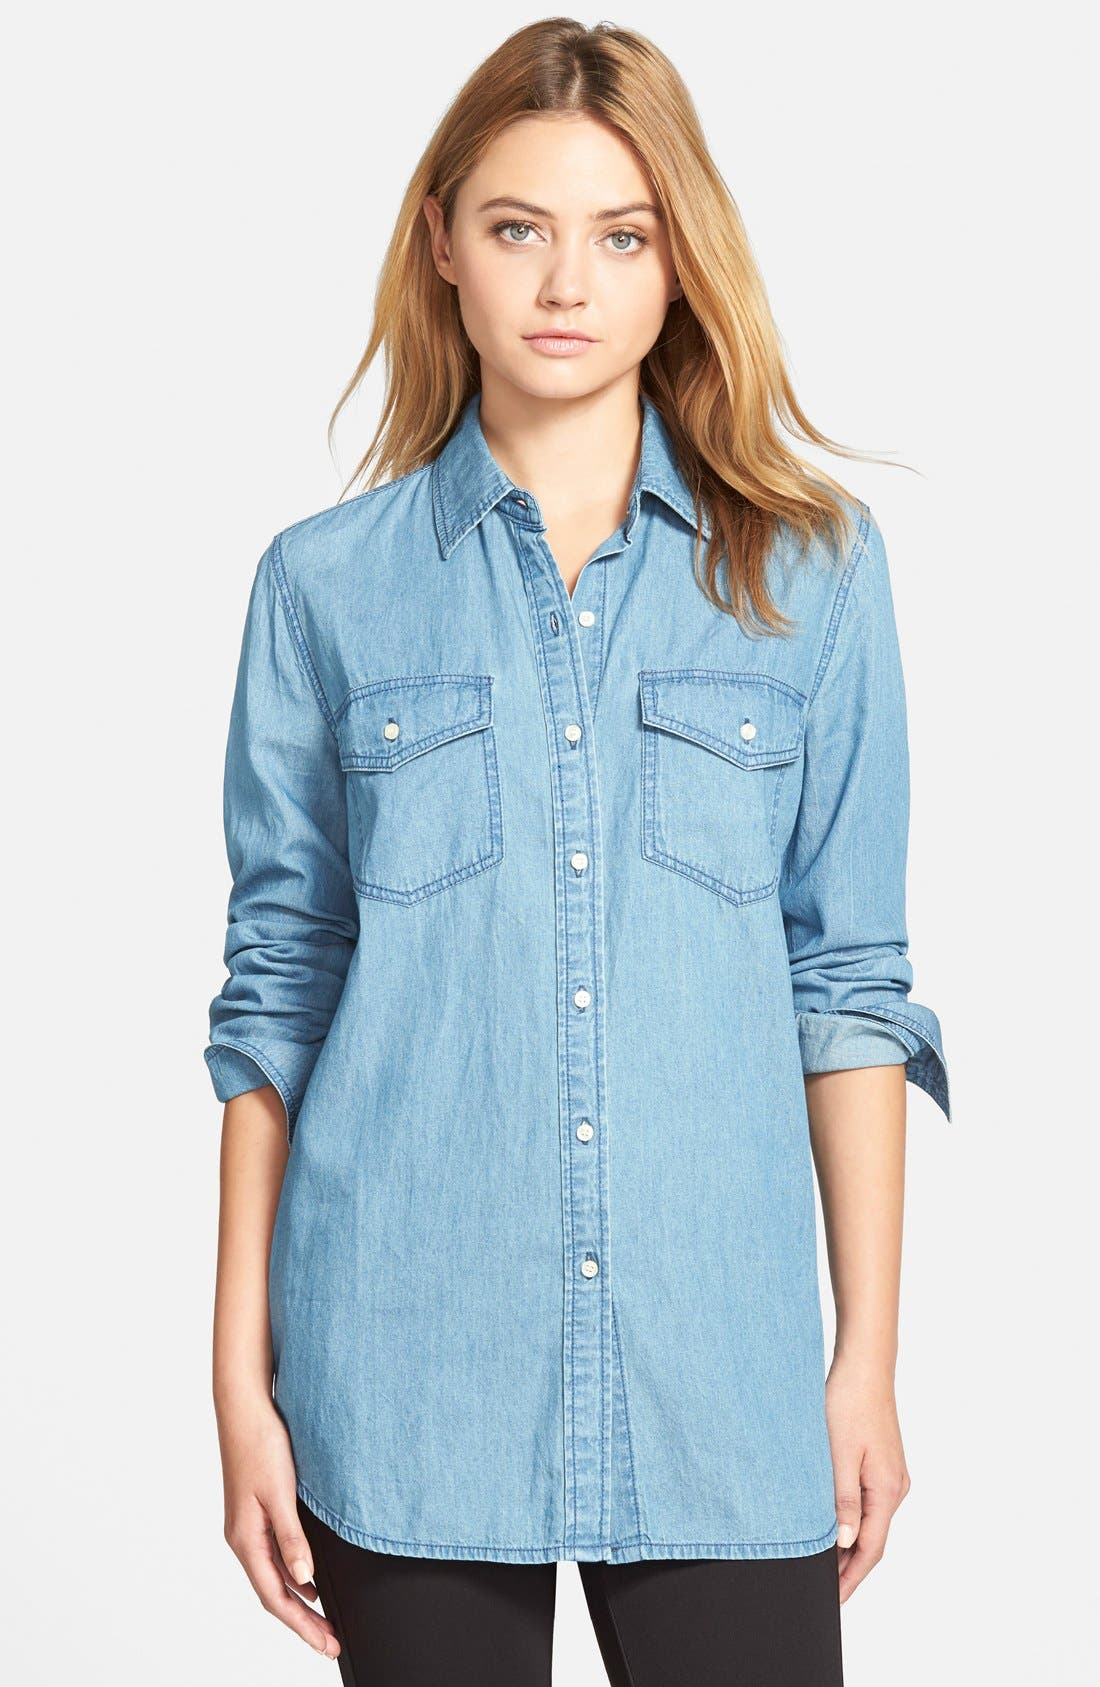 'Golden State' Chambray Shirt,                             Main thumbnail 1, color,                             Blue